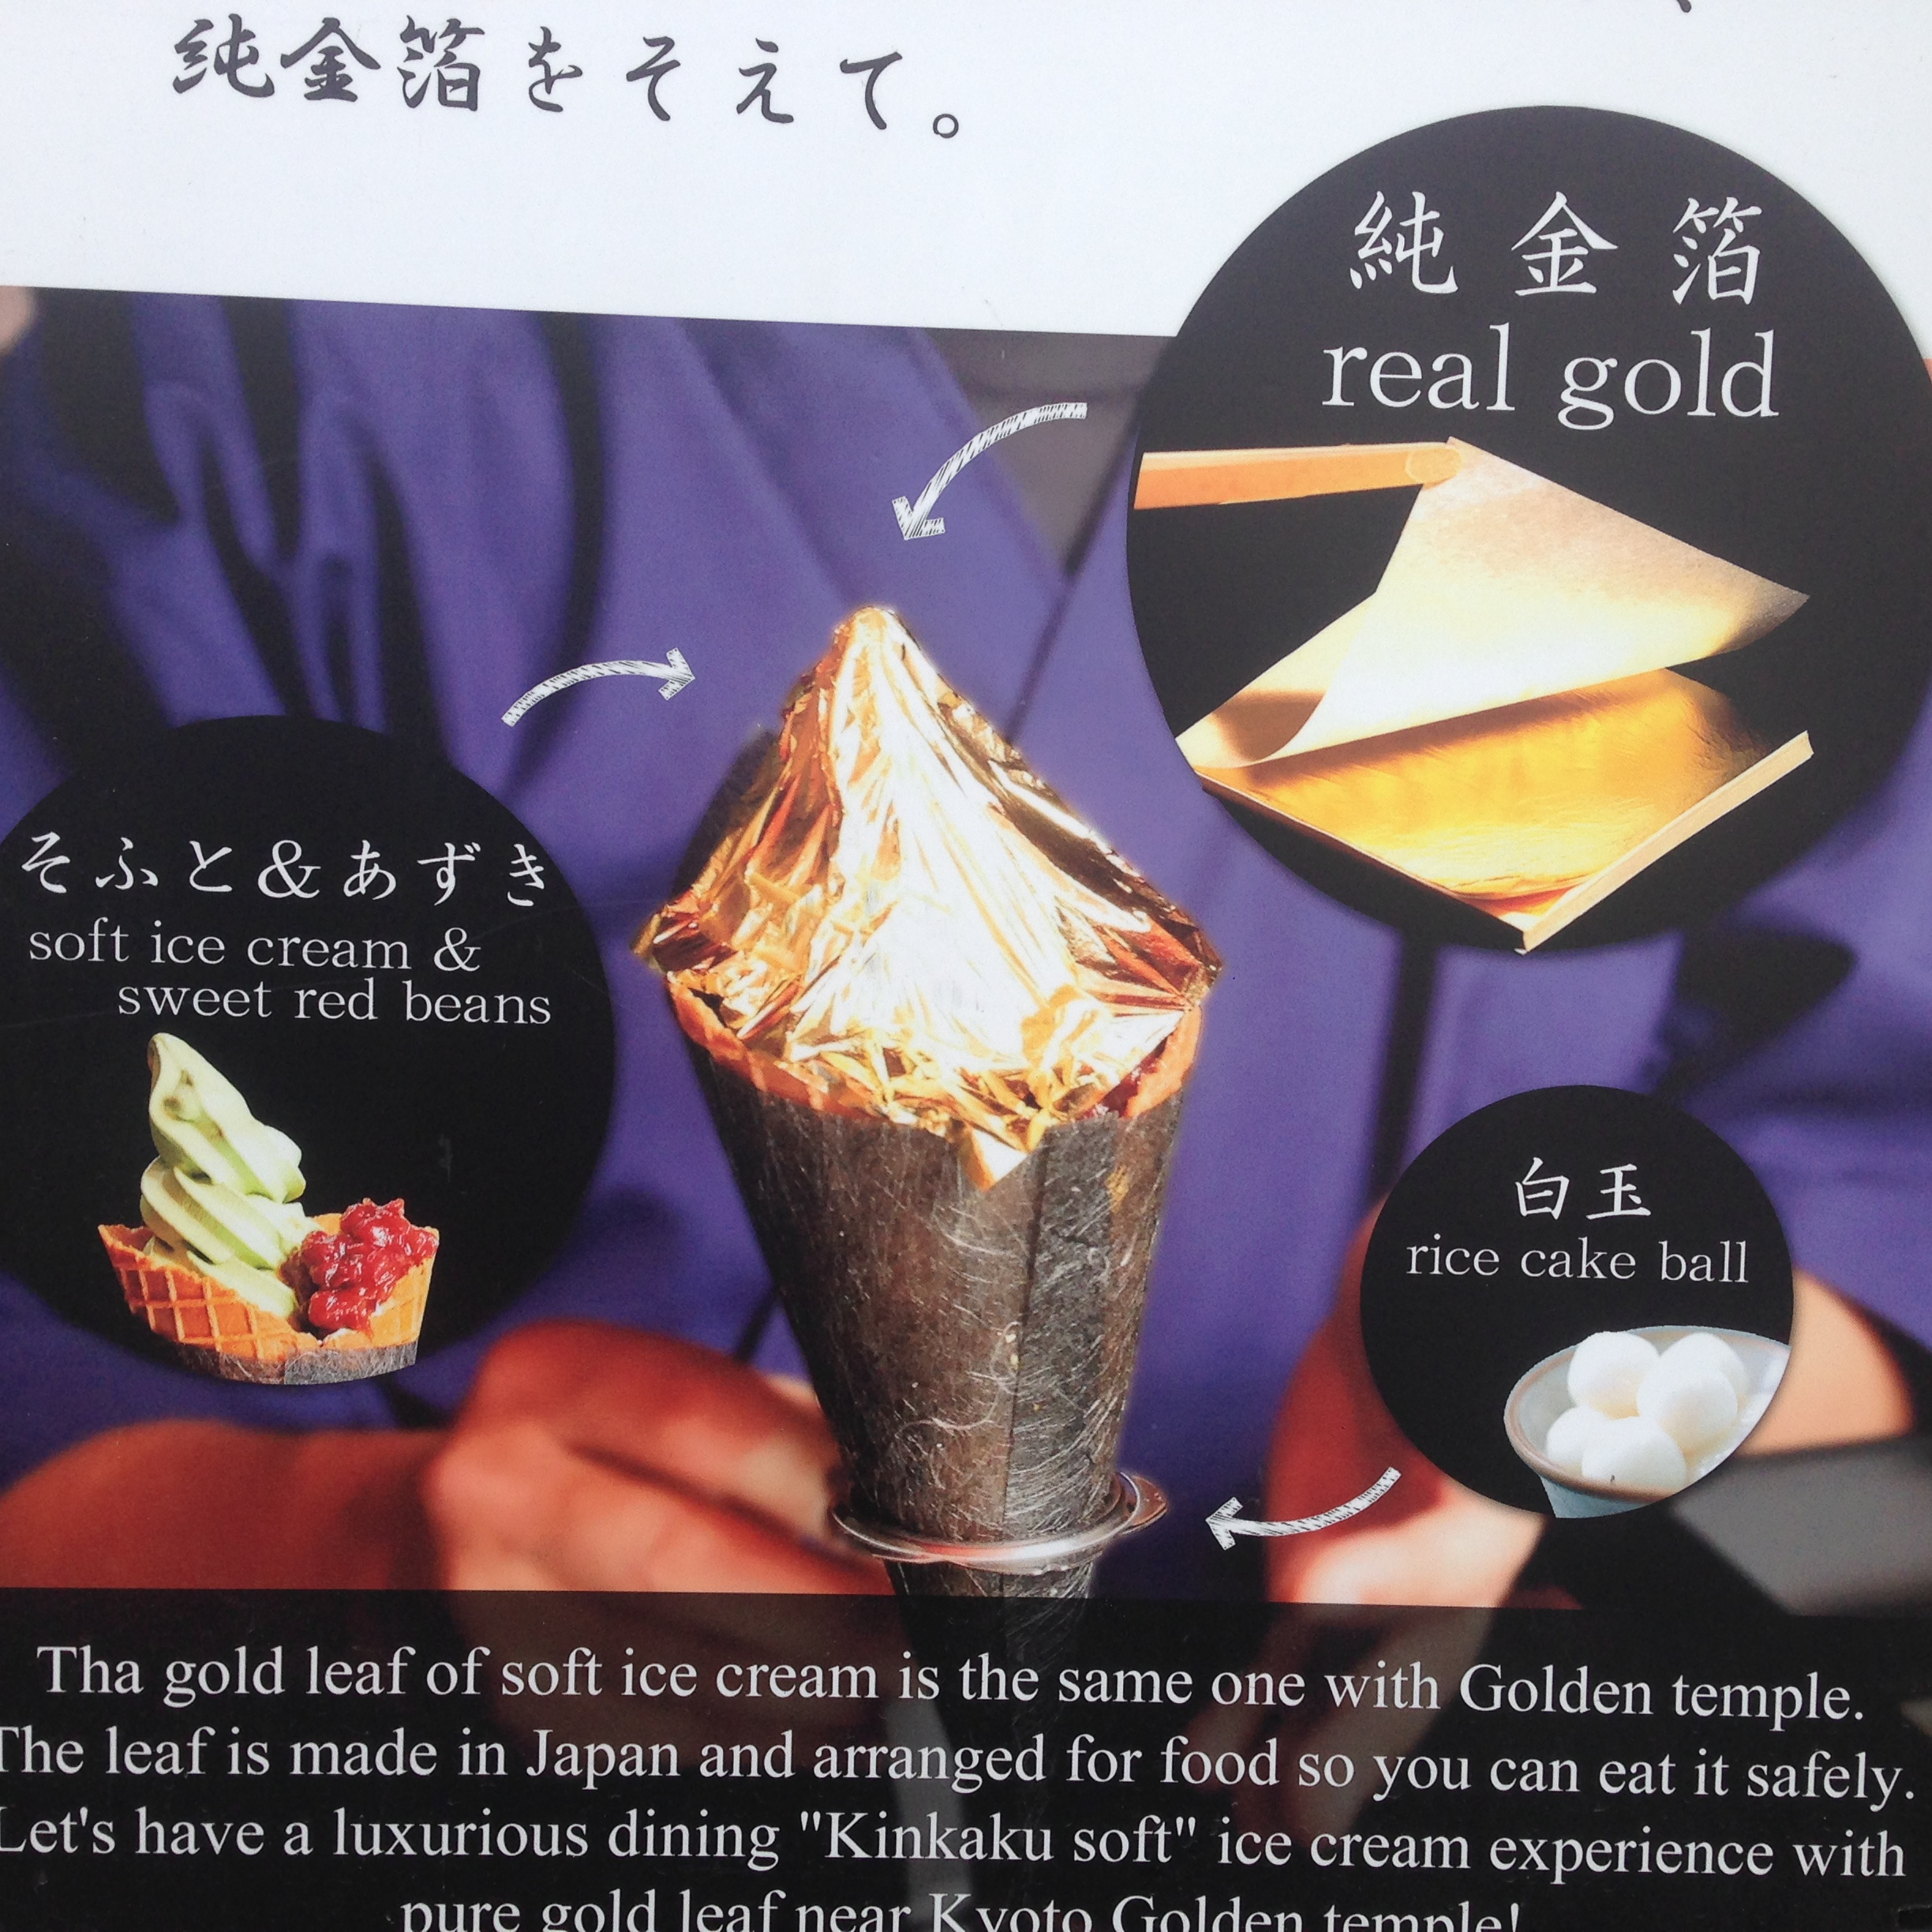 Gold ice cream is a thing, and it costs $9 too!